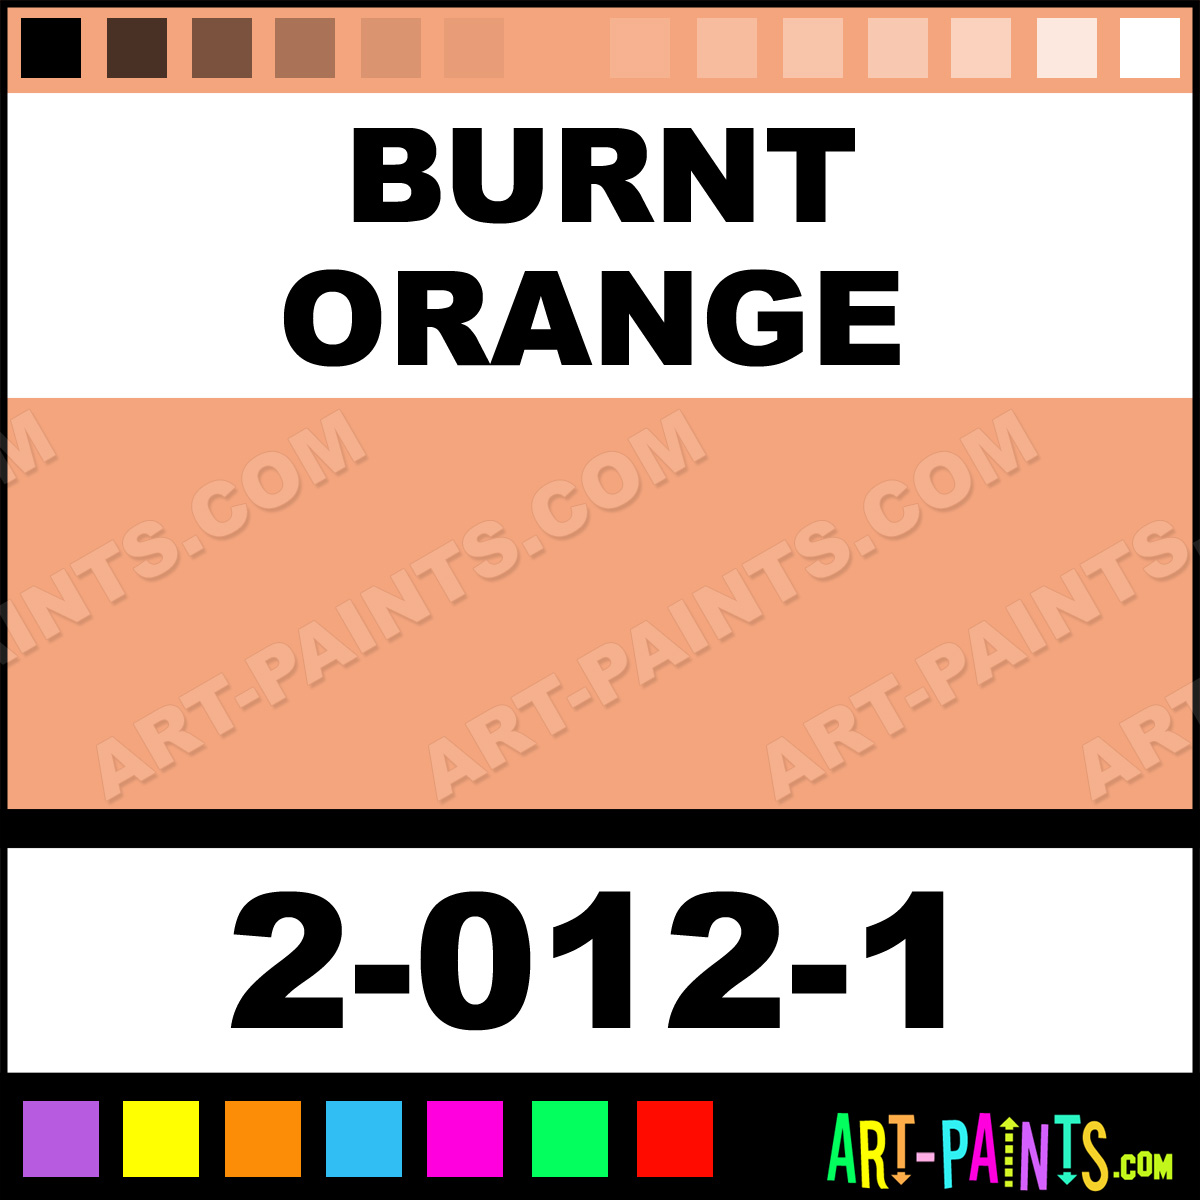 Burnt Orange Paint Burnt Orange Com Art Transparent Airbrush Spray Paints  20121